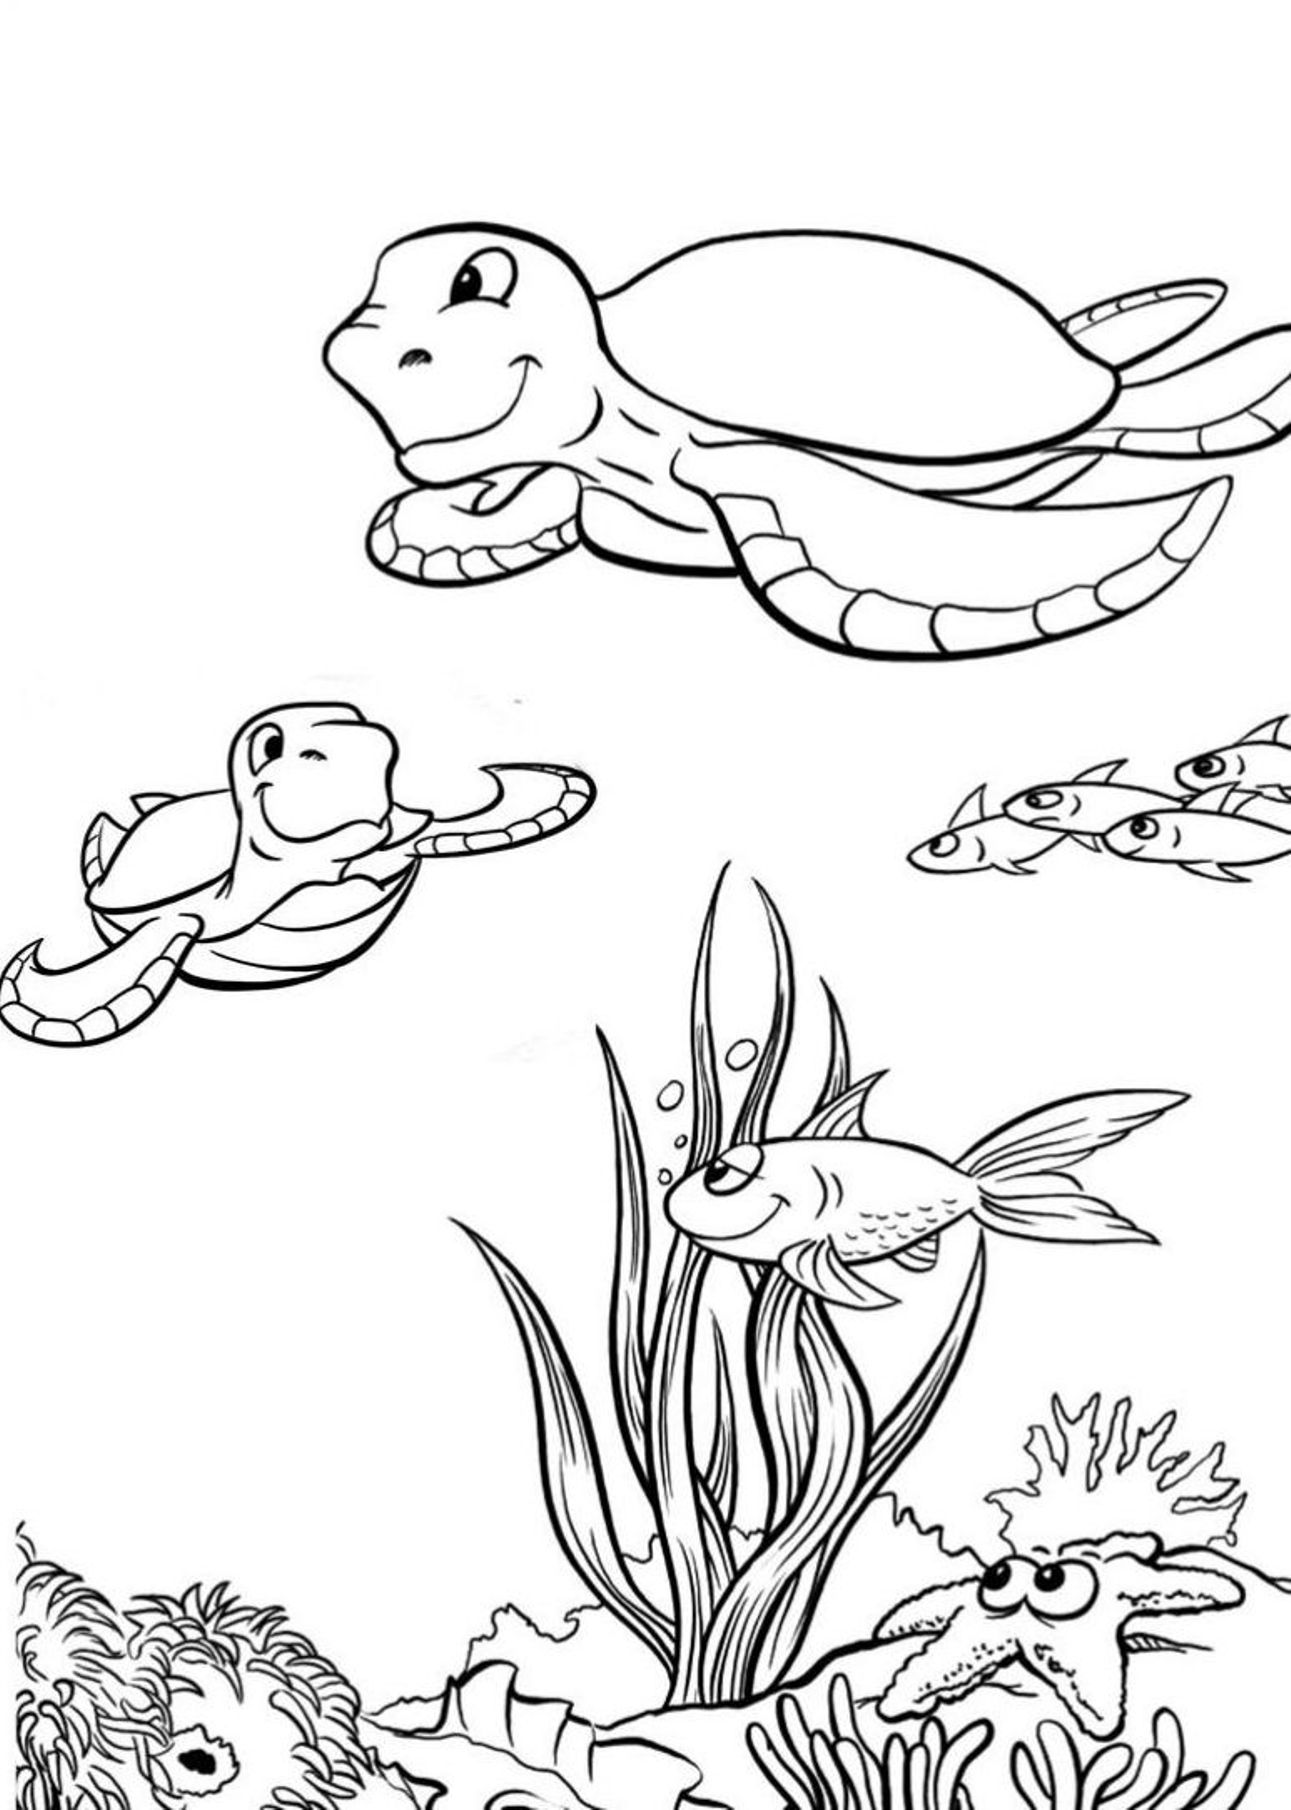 baby sea turtle coloring page baby sea turtle coloring page turtle coloring baby page sea